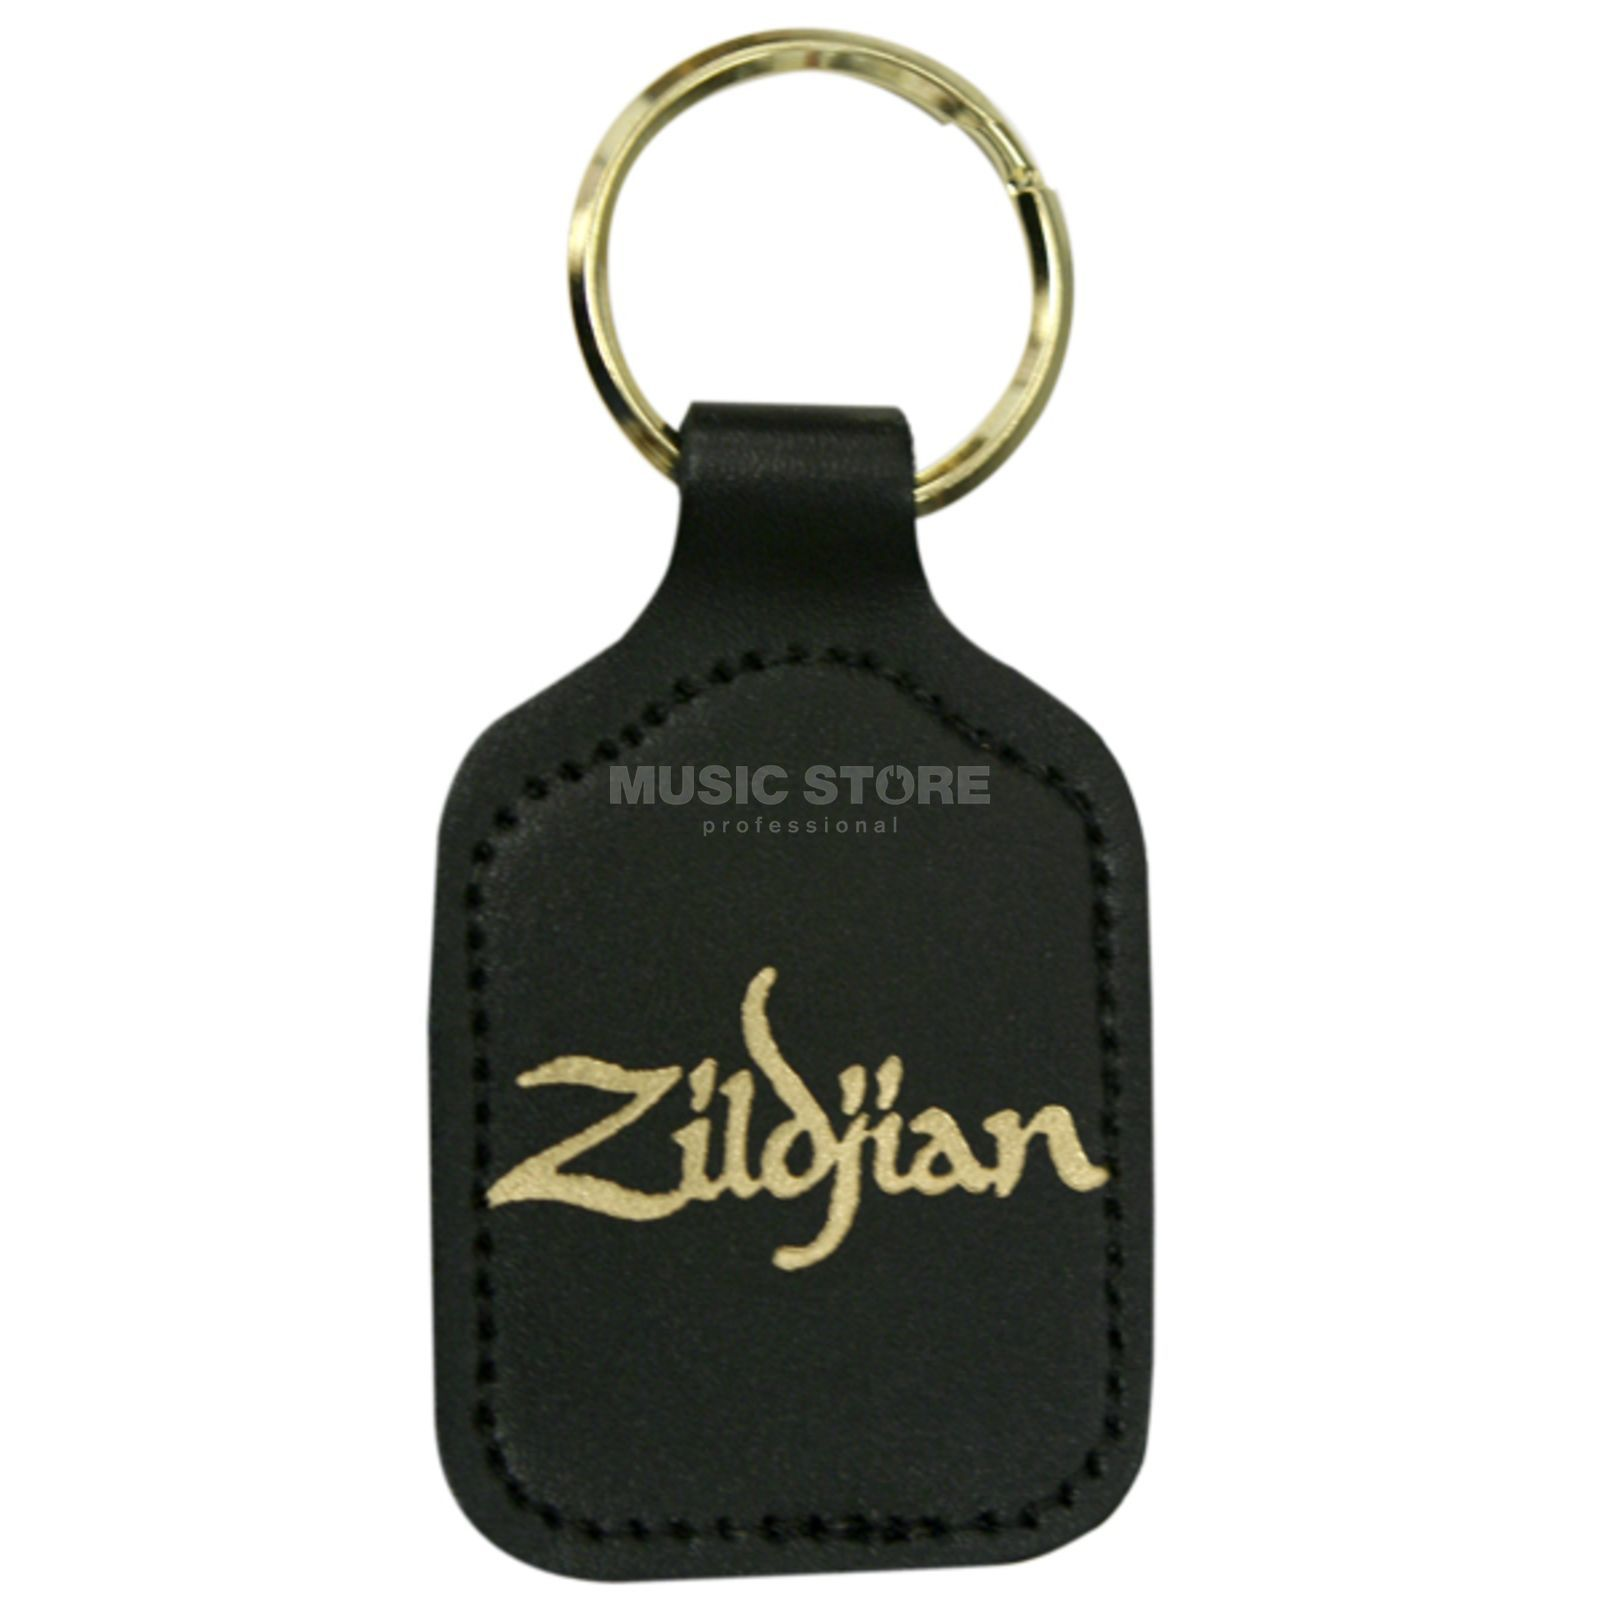 Zildjian Leather Key Ring  Produktbild